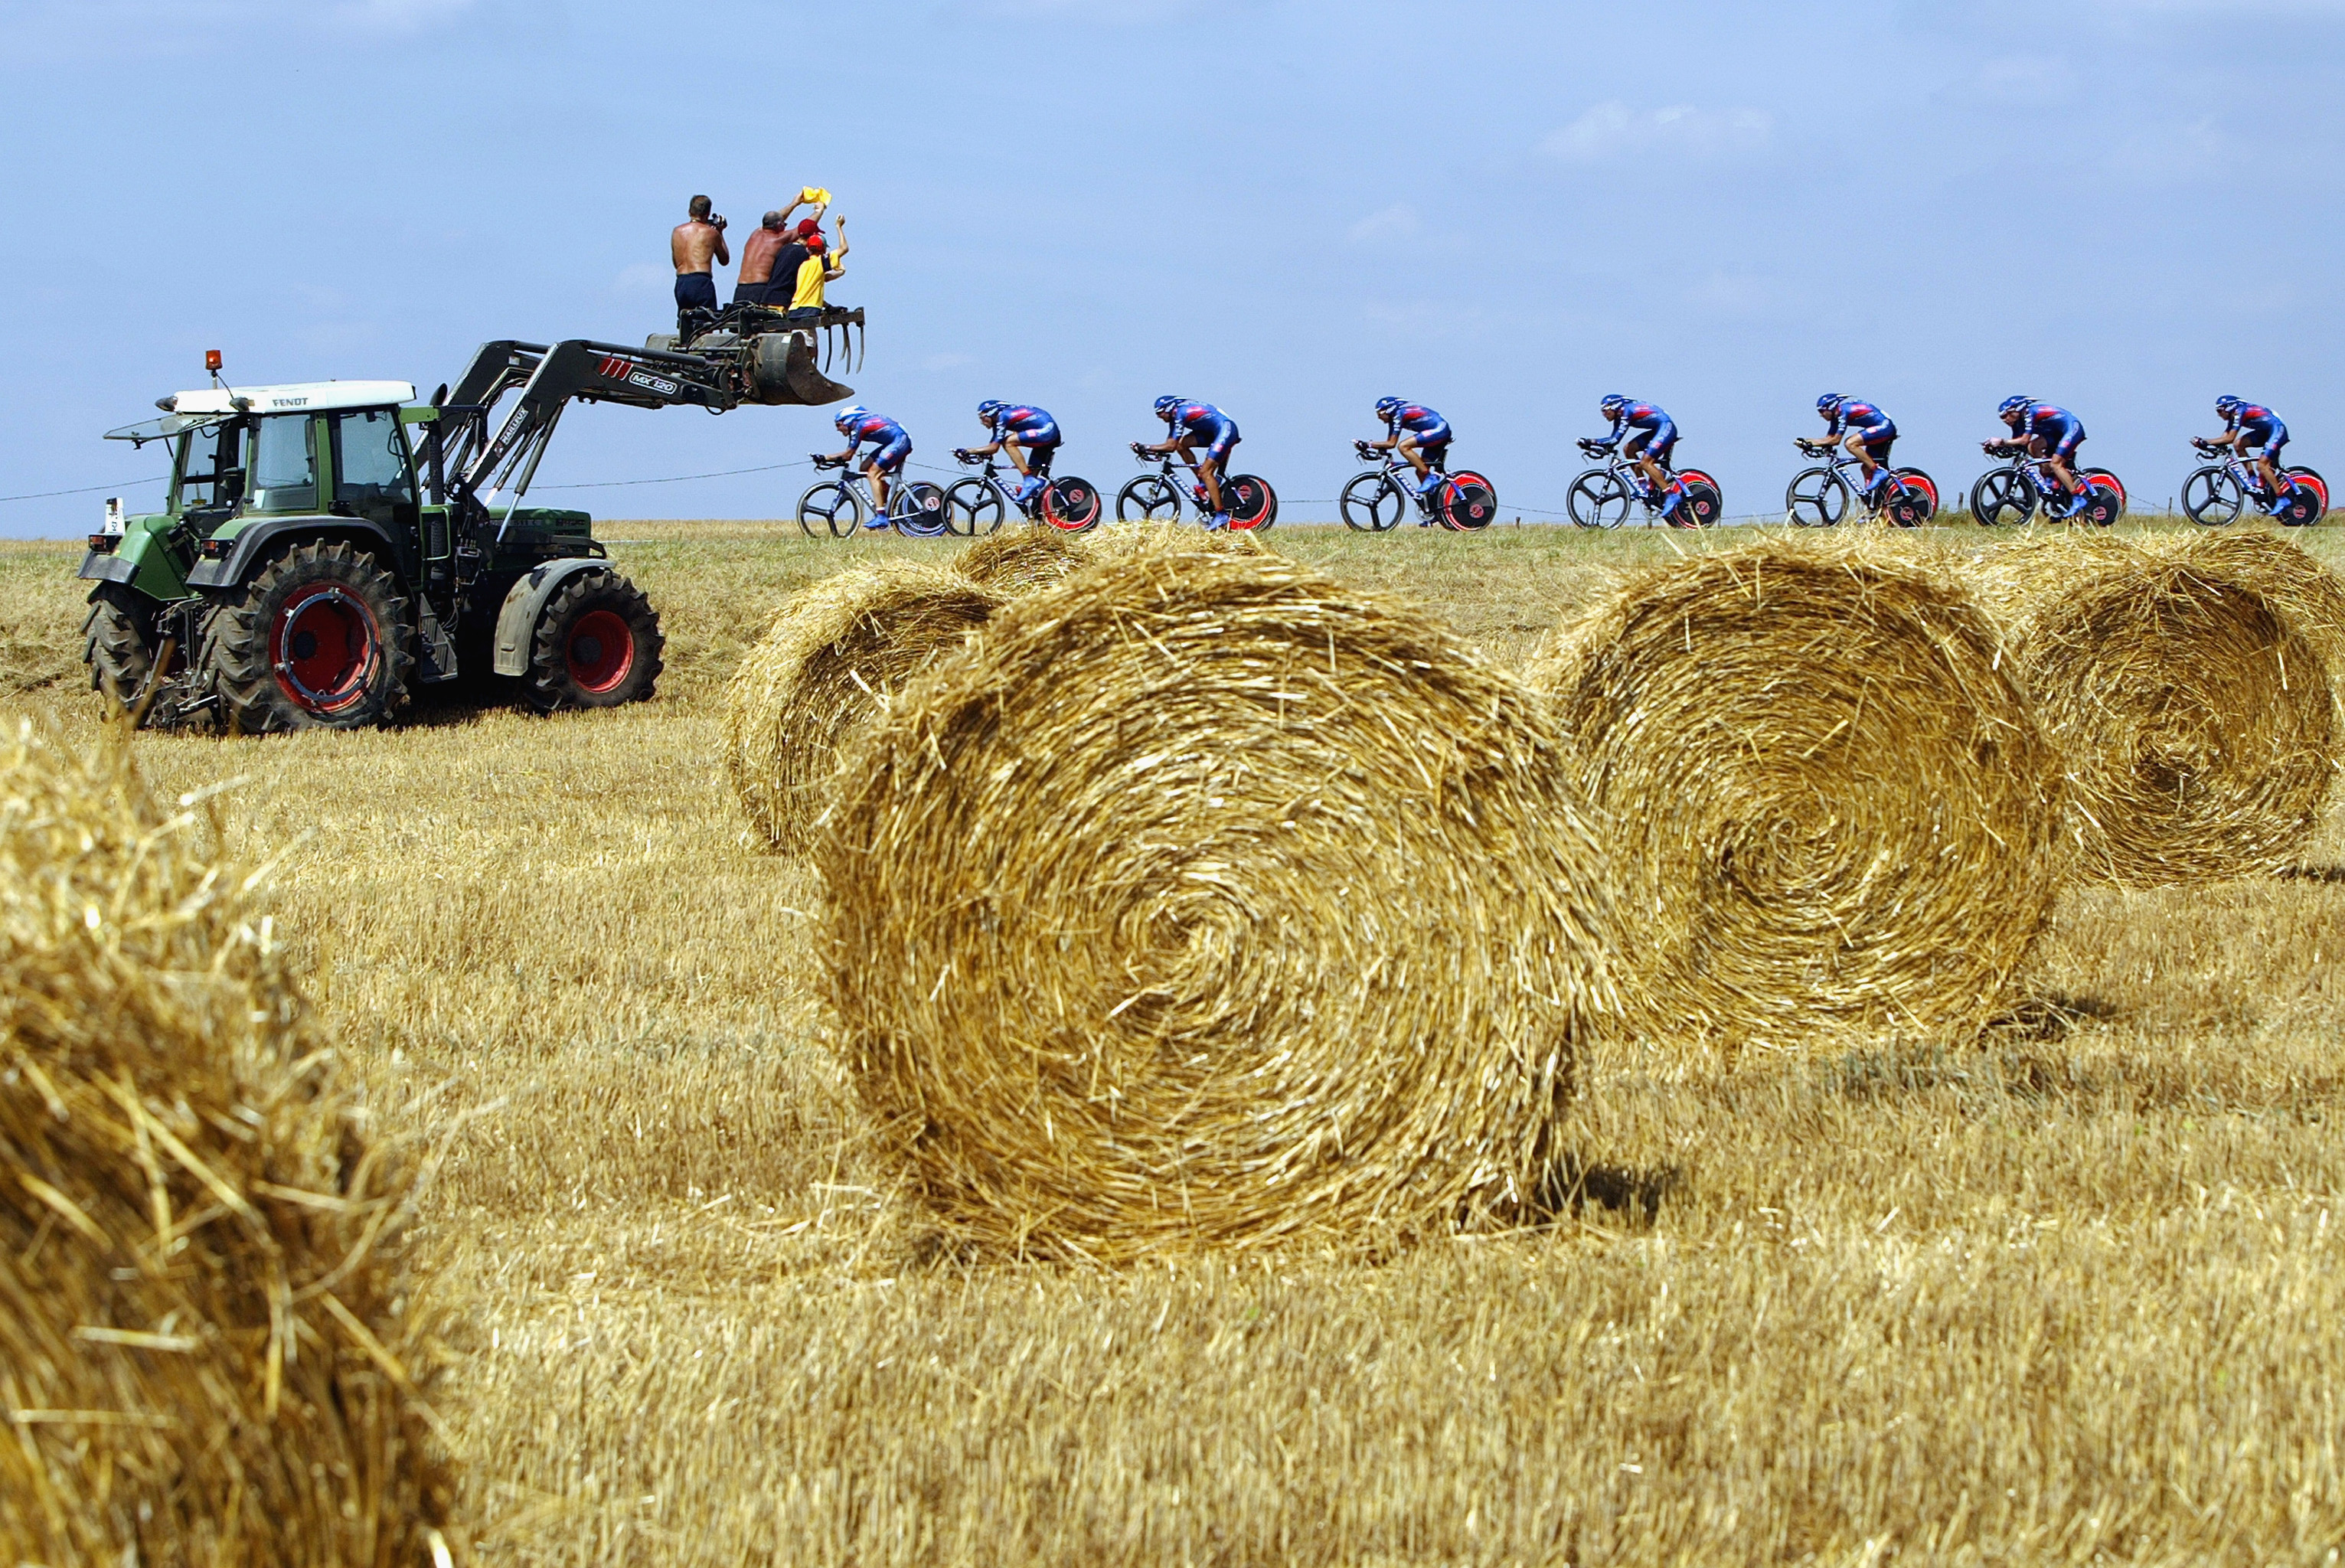 JOINVILLE, FRANCE - JULY 9:  Lance Armstrong (far left) of the United States leads the US Postal-Berry Floor team as they travel through the agricultural fields of France to win the team time trial in stage four of the Tour de France from Joinville to Saint-Dizier on July 9, 2003 in France.  Armstrong went on to win his fifth Tour de France title.  (Photo by Doug Pensinger/Getty Images)